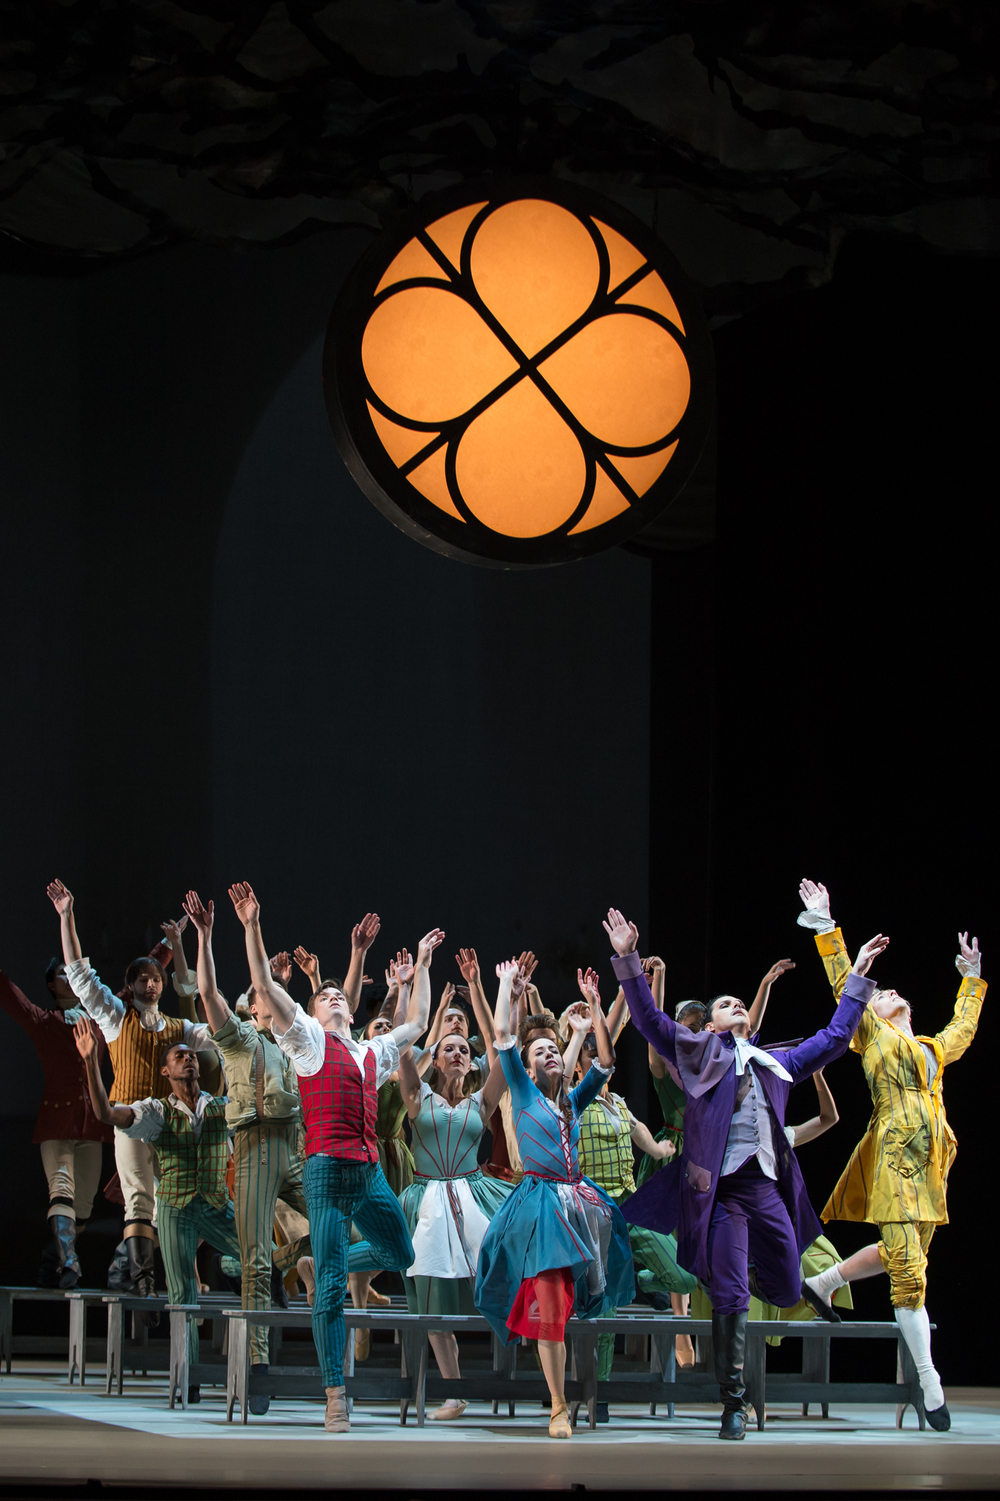 Photo credit by Theo Kossenas – Media4Artists courtesy of the Washington Ballet